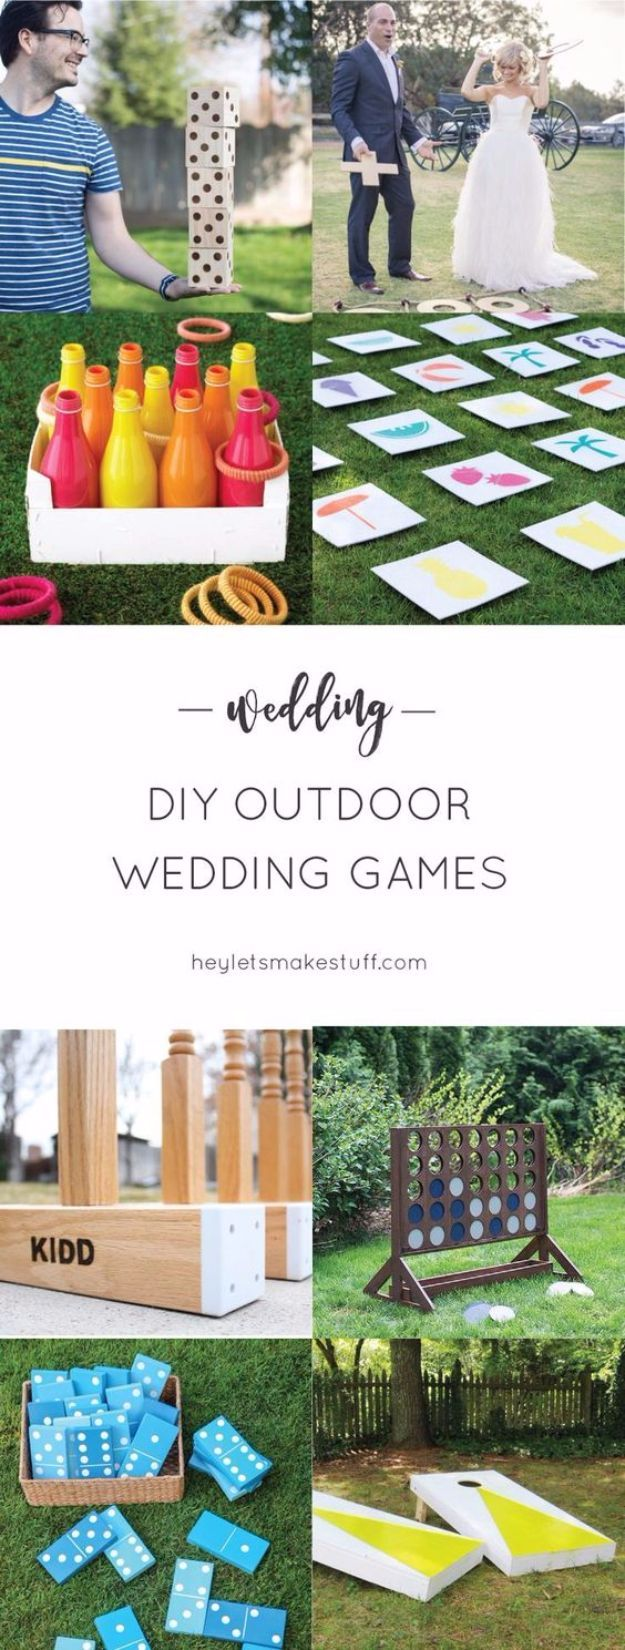 41 best diy ideas for your outdoor wedding diy ideas gaming and 41 best diy ideas for your outdoor wedding decor games seating signs everything you can think of junglespirit Images